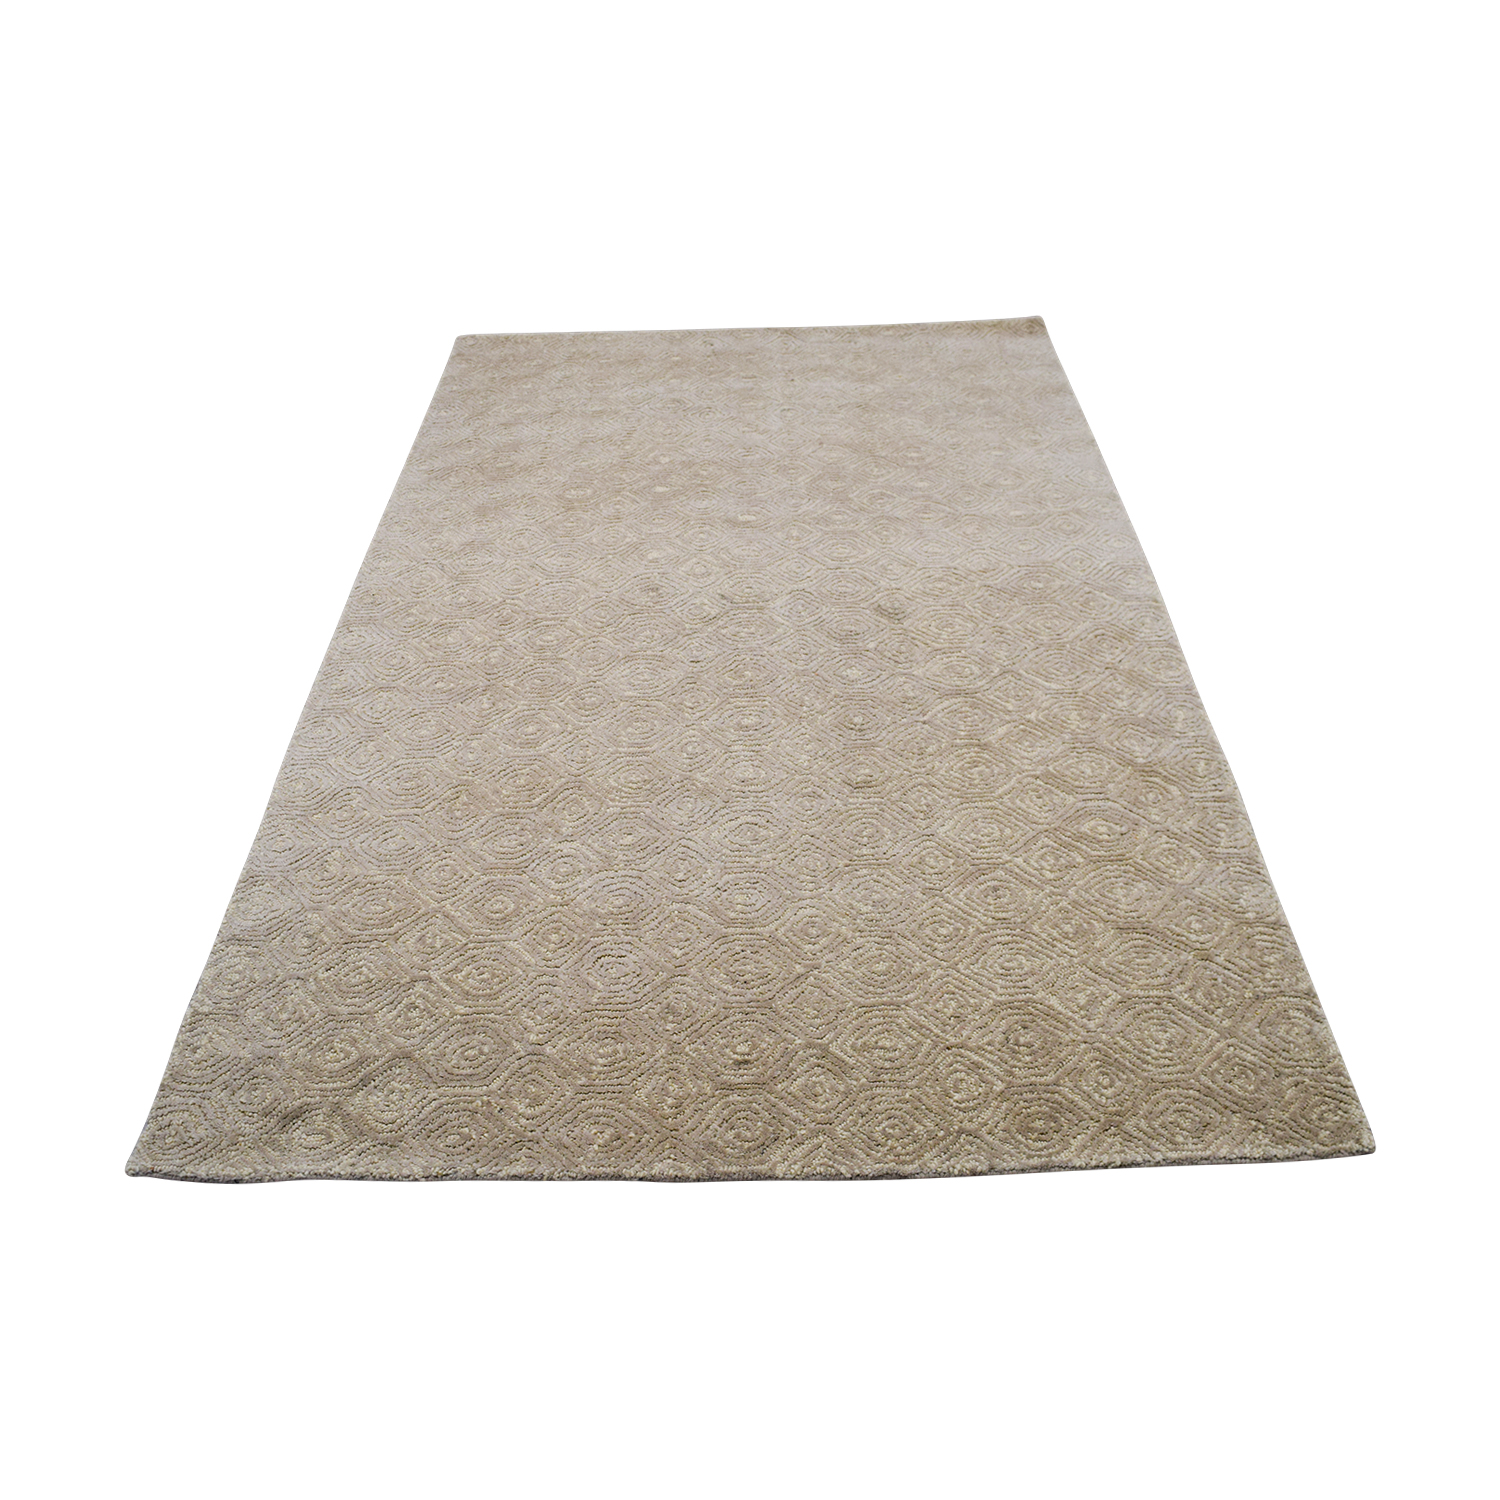 Obeetee Off White with Spiral Design Rug / Rugs